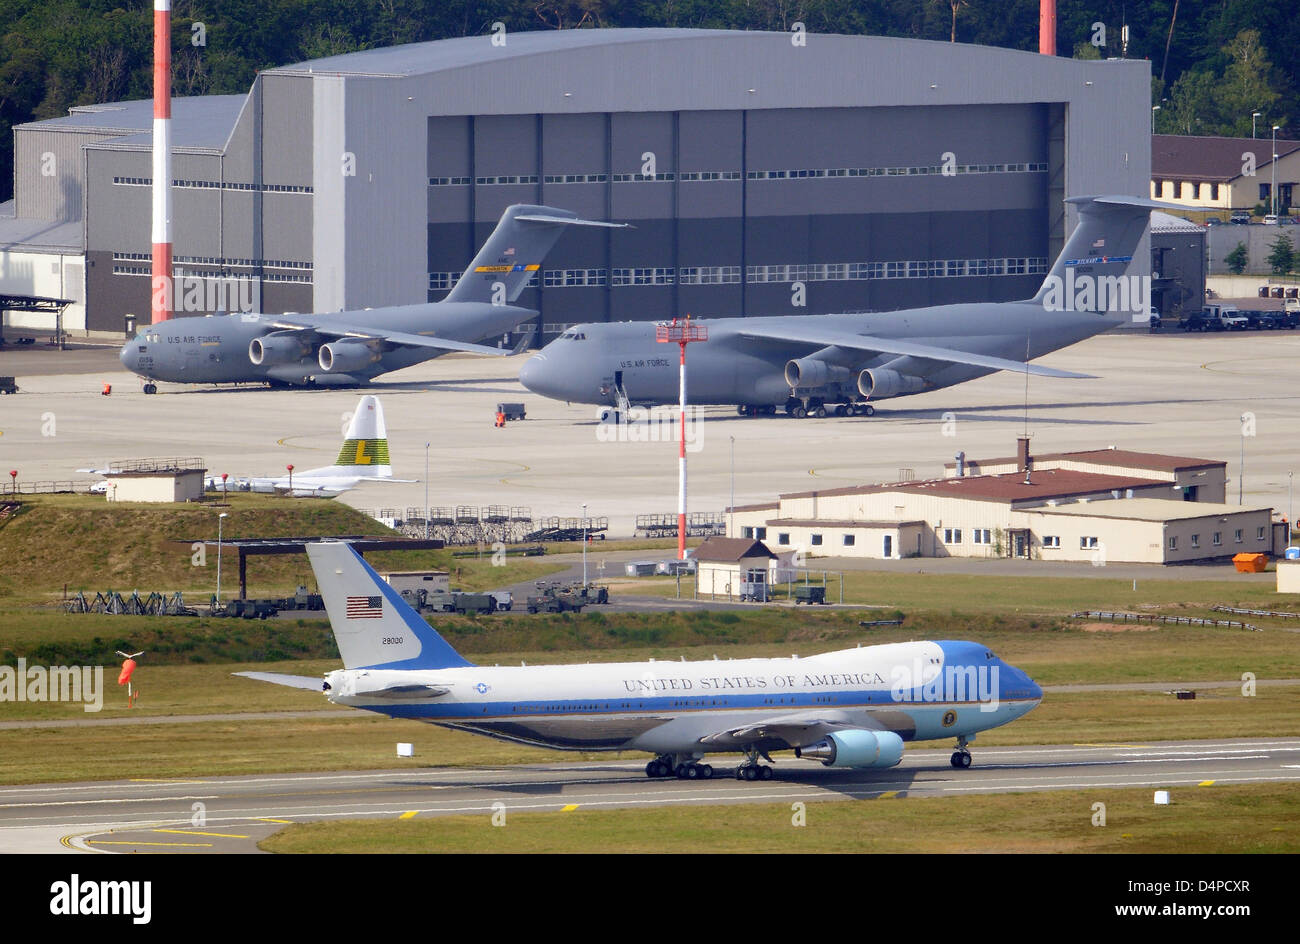 Stock Photo Us President Barack Obama Aboard Of Air Force One Touches Down At Us Air Base Ramstein Germany 05 June 2009 After Visiting Dresden And The